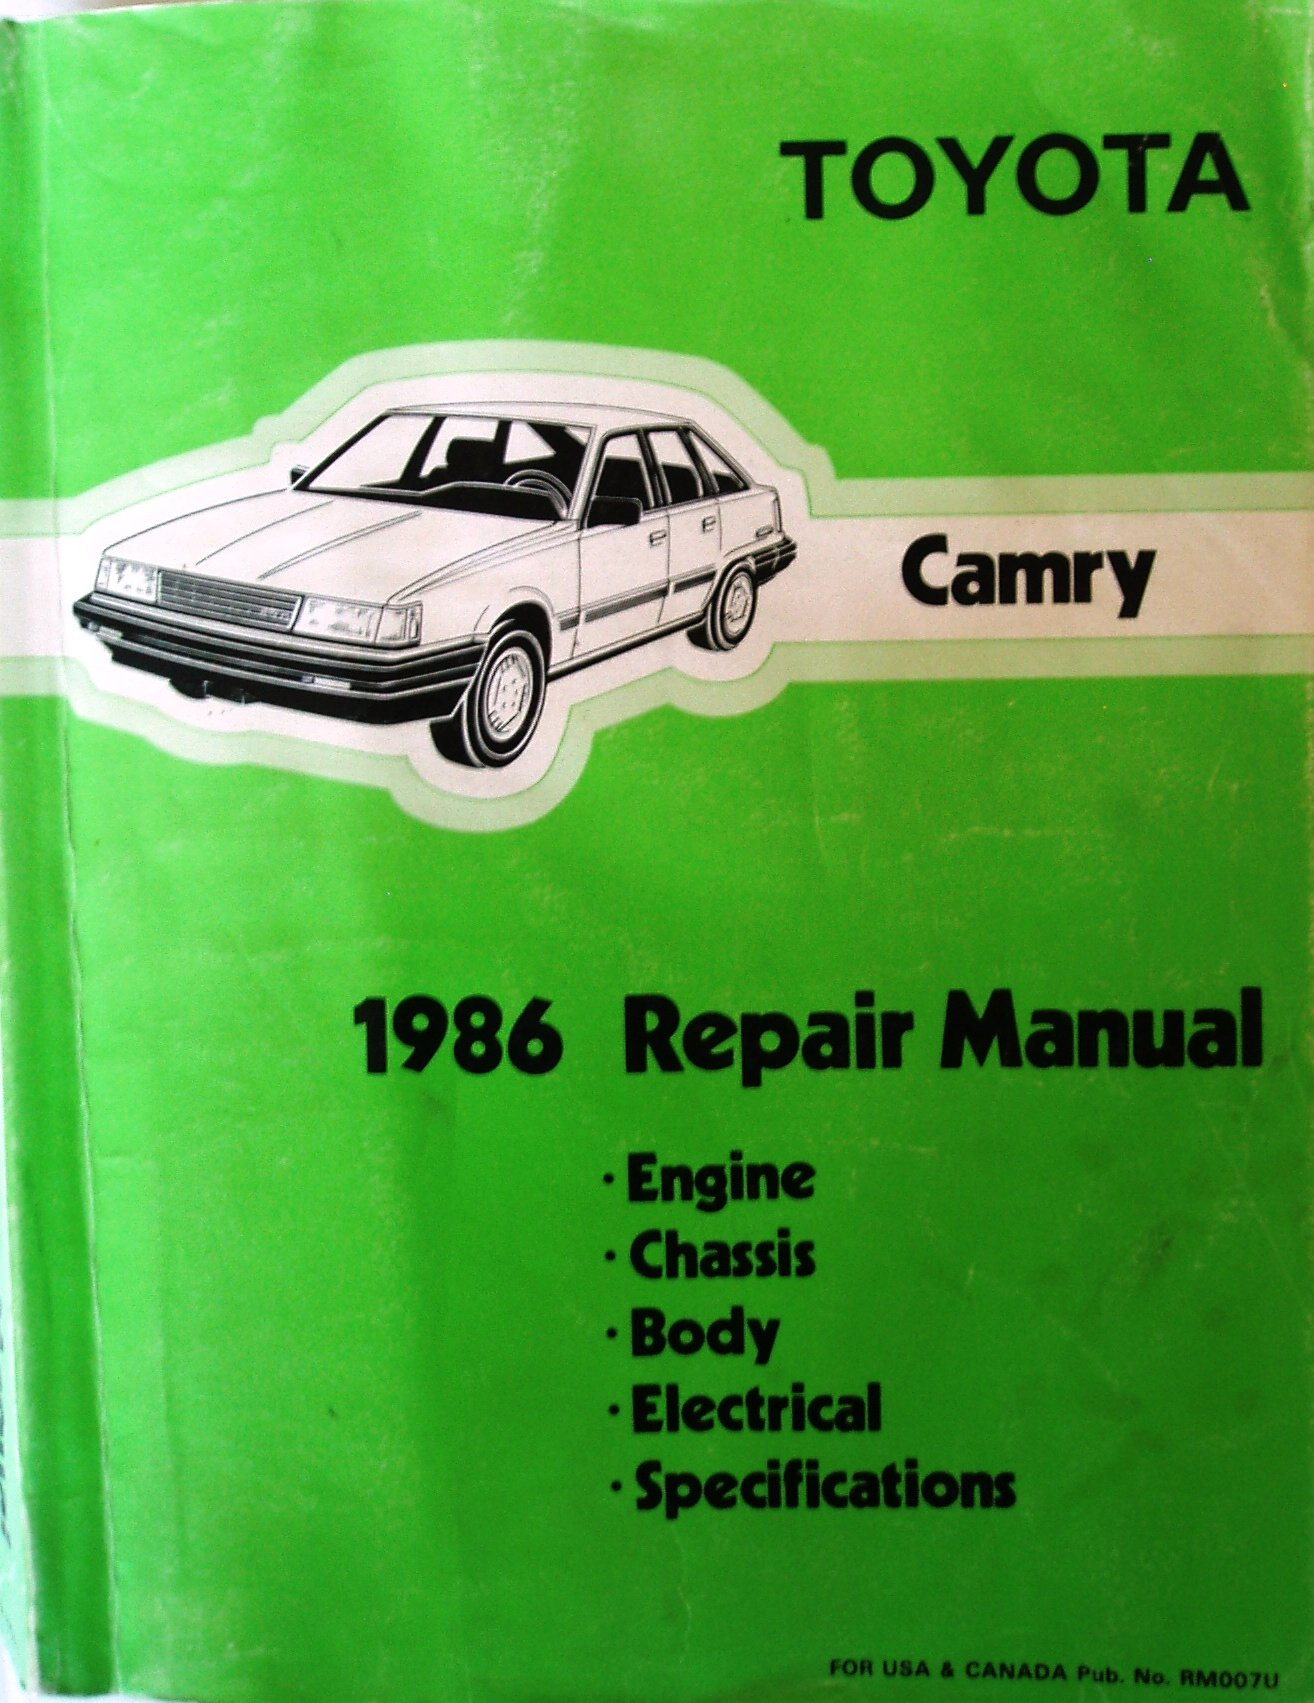 Toyota Camry 1986 Repair Manual: Toyota Motor Corporation: Amazon.com: Books